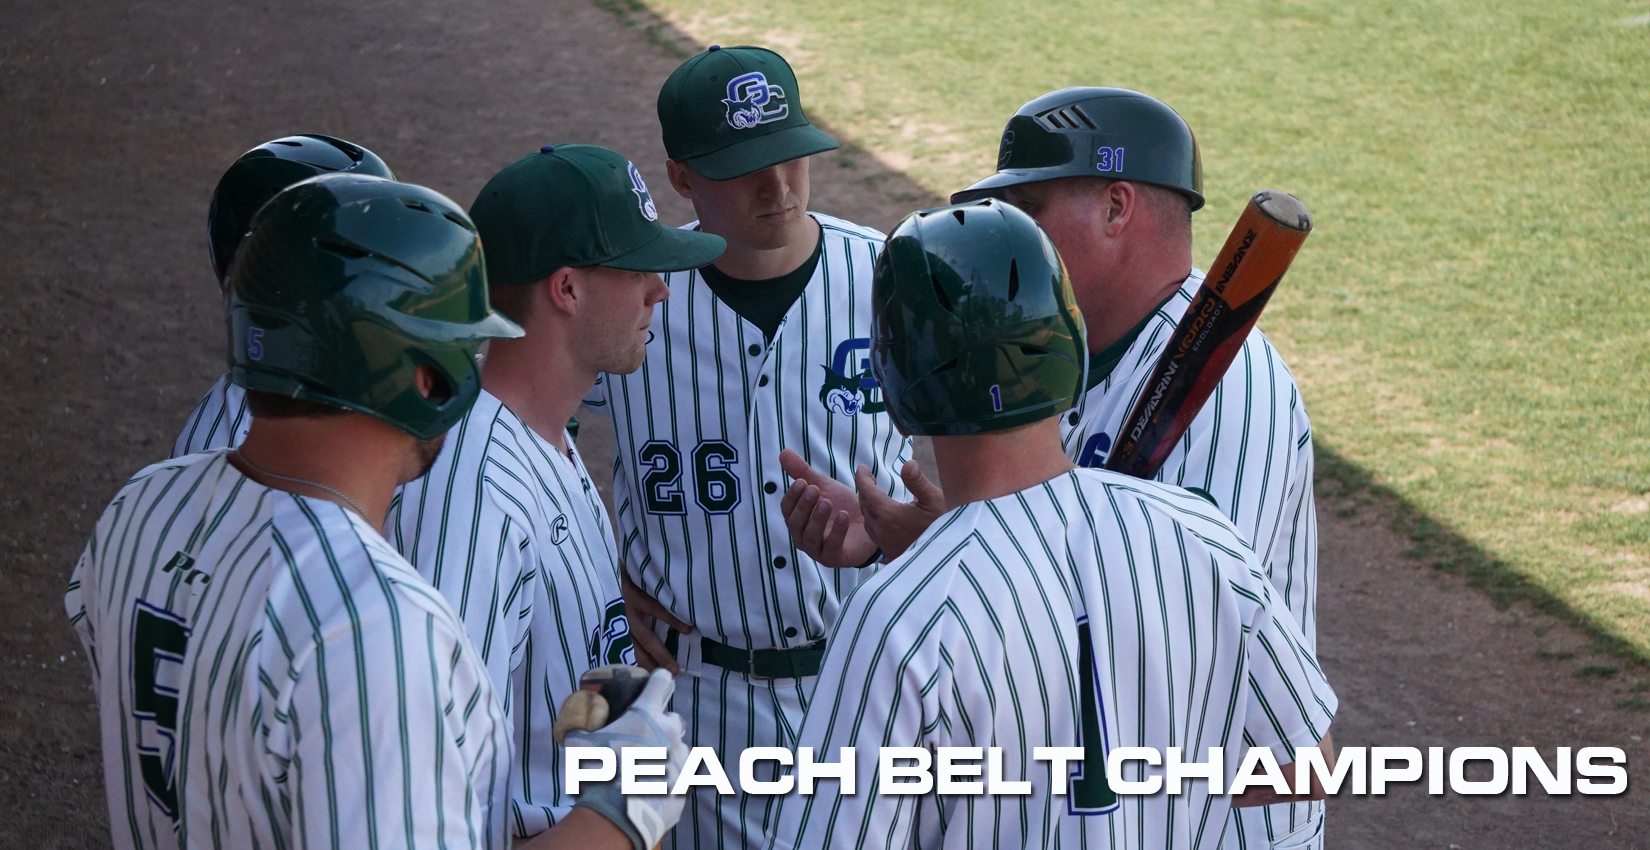 Peach Belt Conference Champions